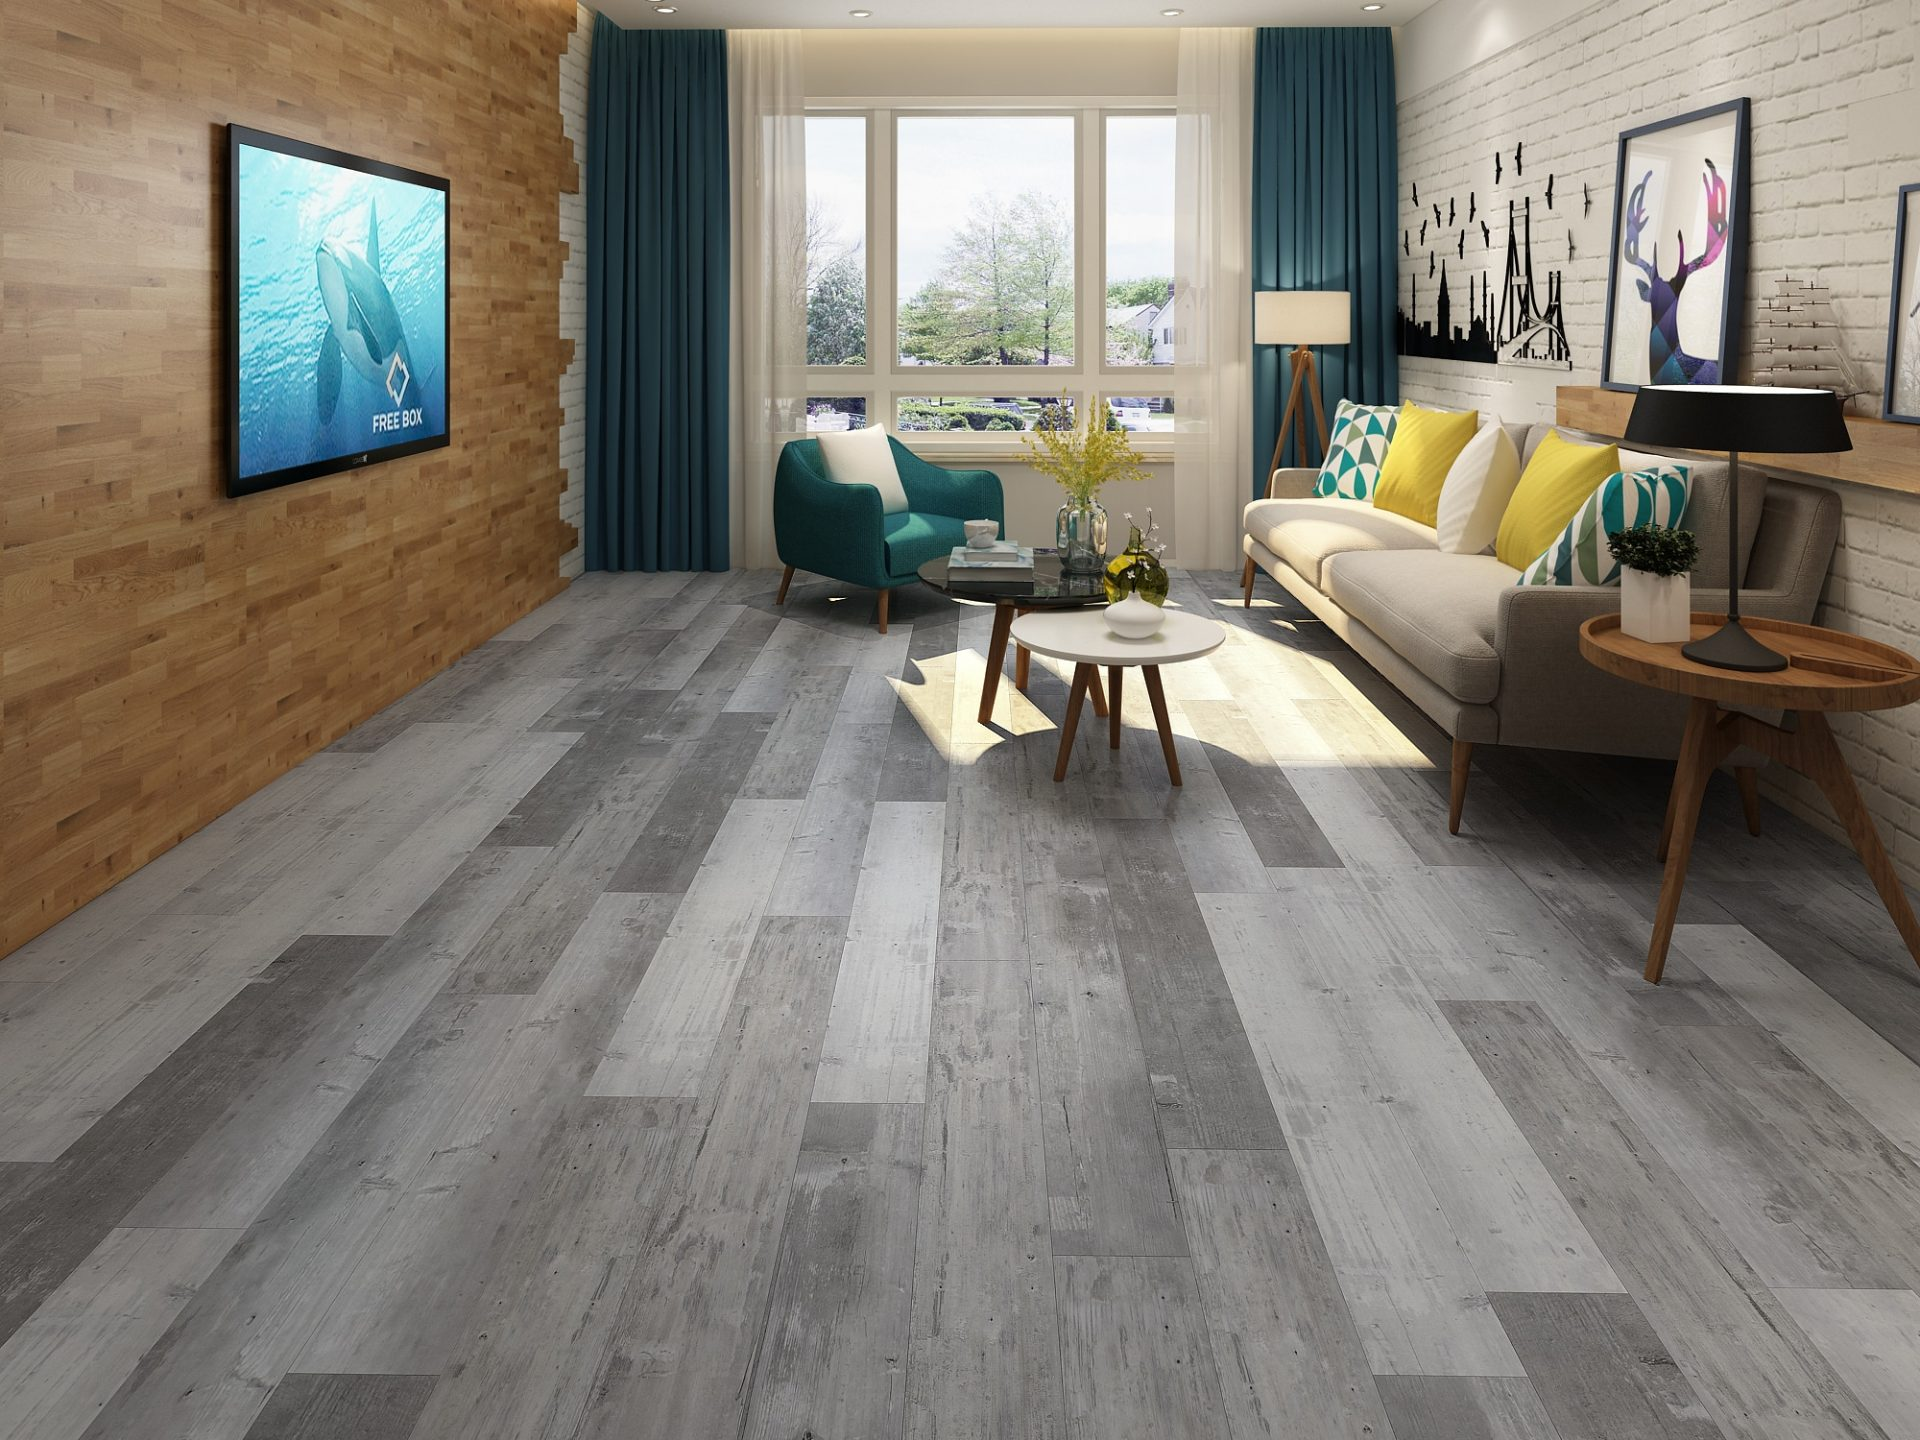 Parkay Xpr Slate Weathered Integrity Laminate Flooring